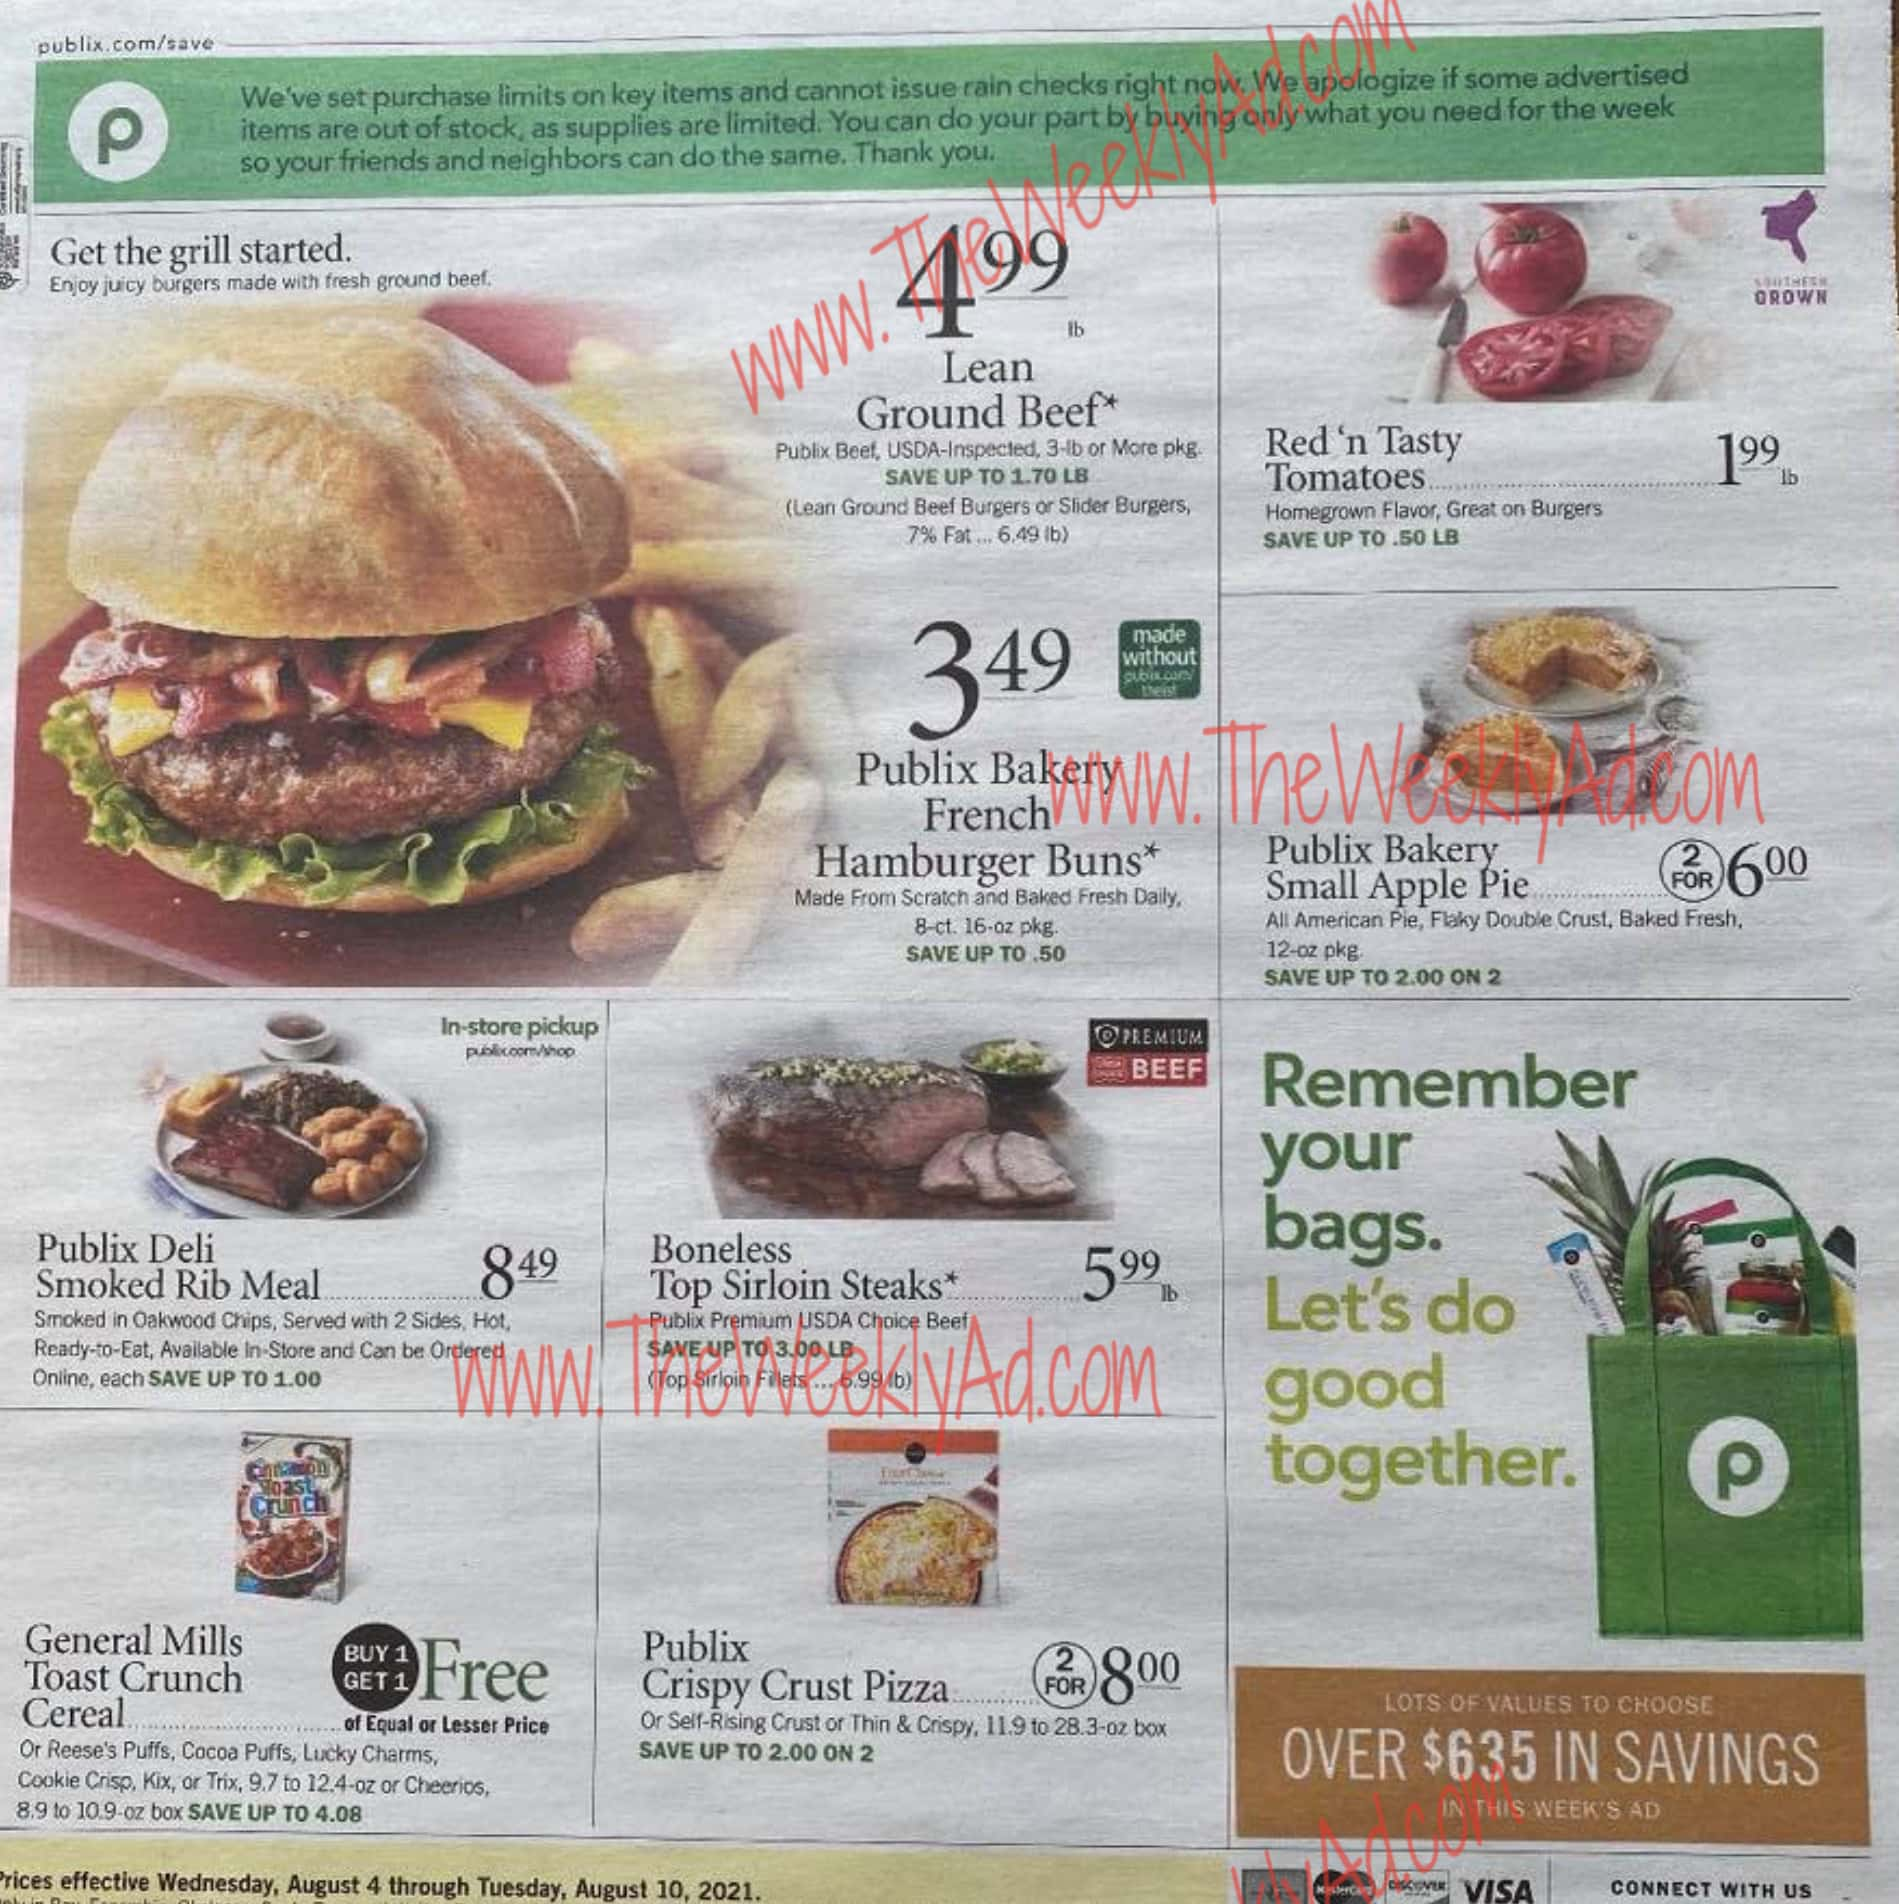 publix_weekly_ad_080421_01